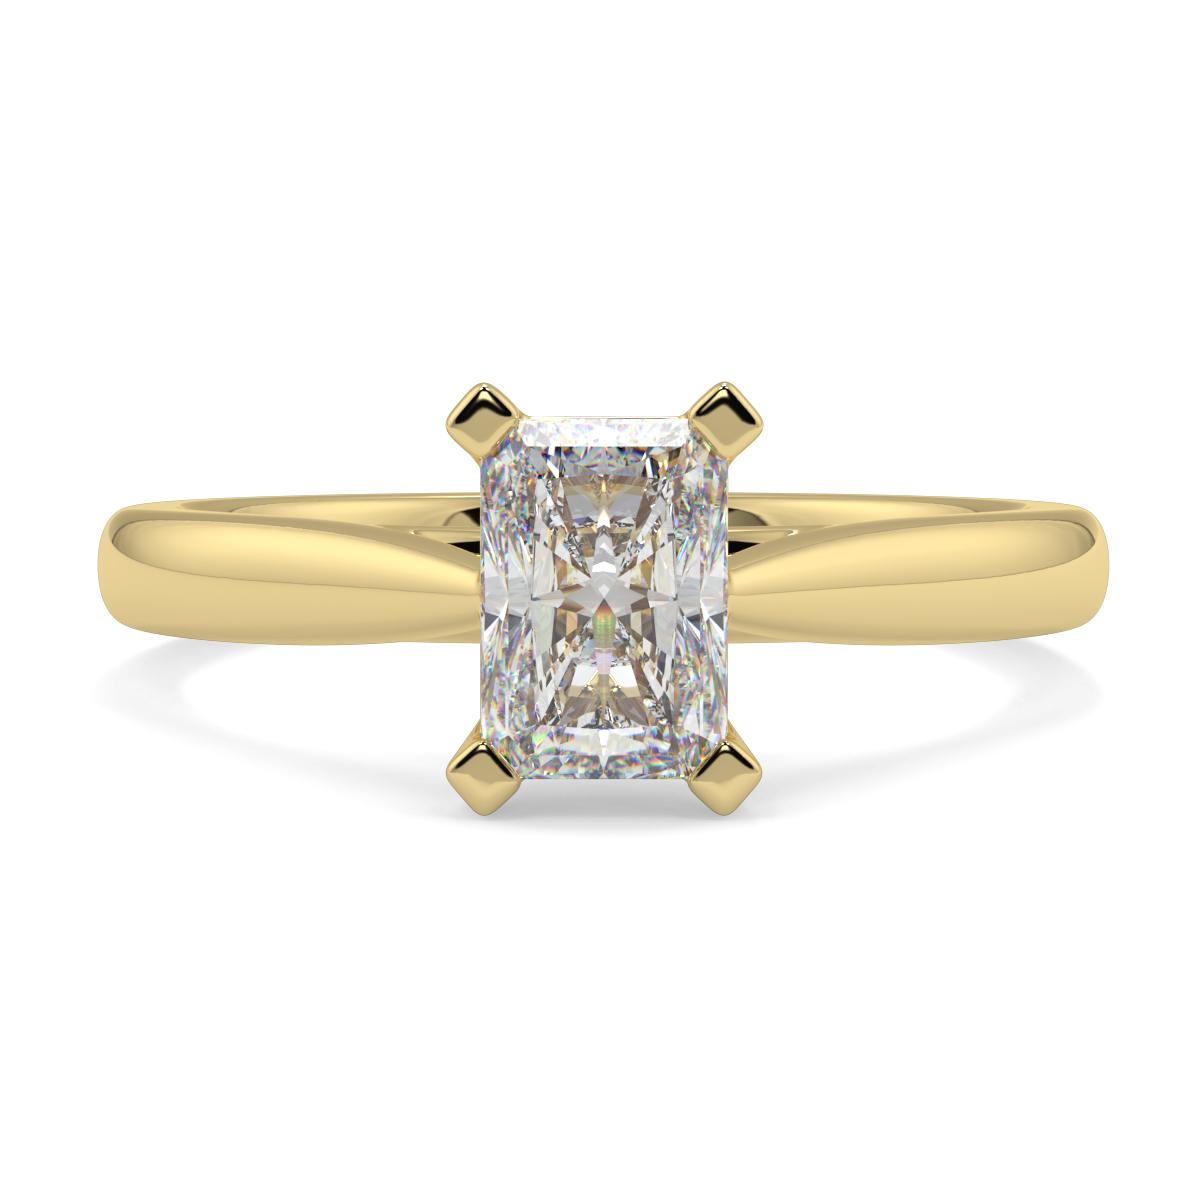 Radiant 4 Claw Solitaire Tappered  Ring